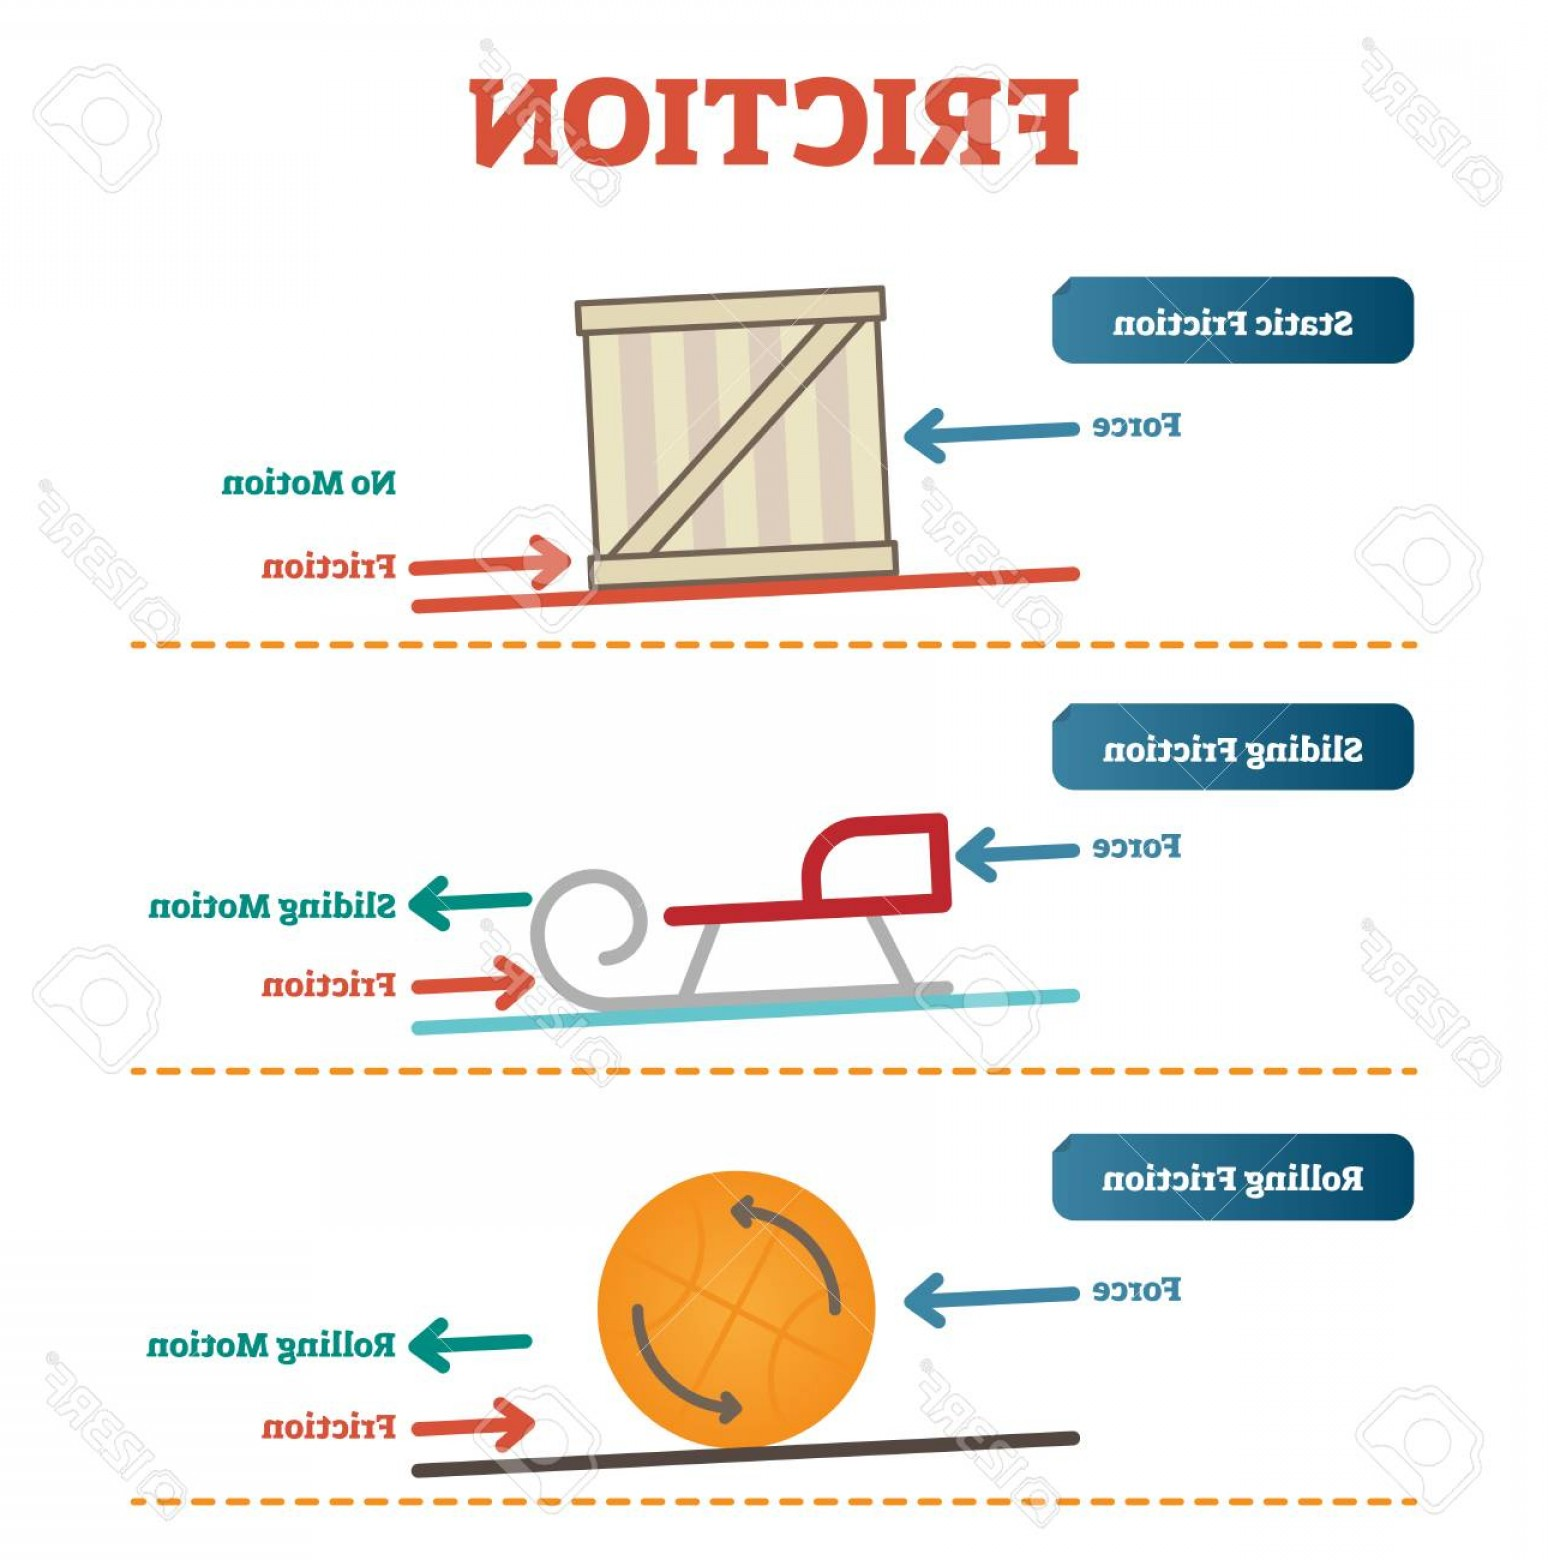 Example Of Vectors Images Movement: Photostock Vector Static Sliding And Rolling Friction Physics Vector Illustration Diagram Poster With Simple Examples